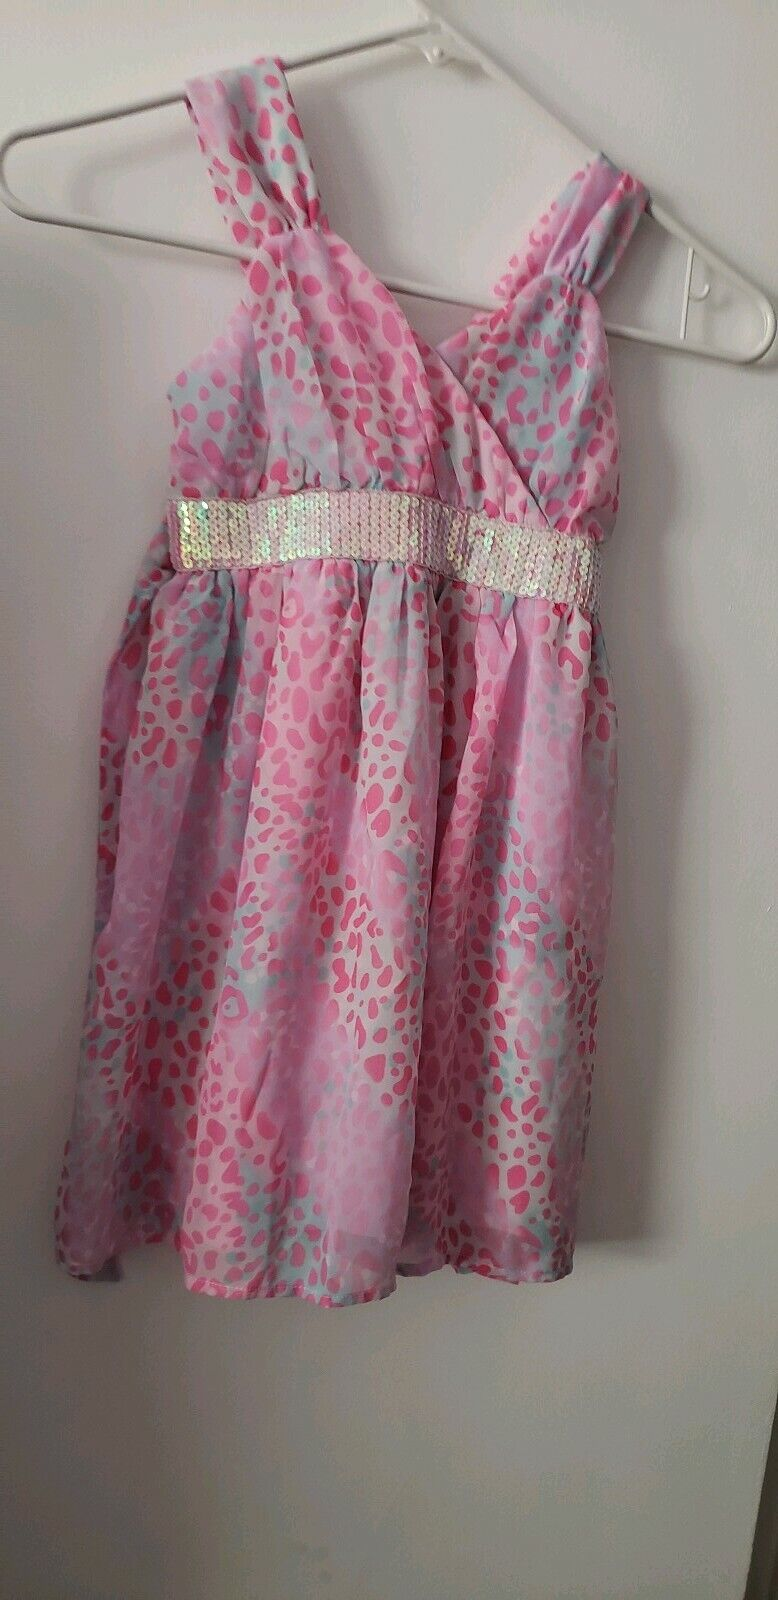 .Girl Pink Dress▪Size XS/EC (4/5)▪ Used Once For A Dance Recital▪Holiday Edition